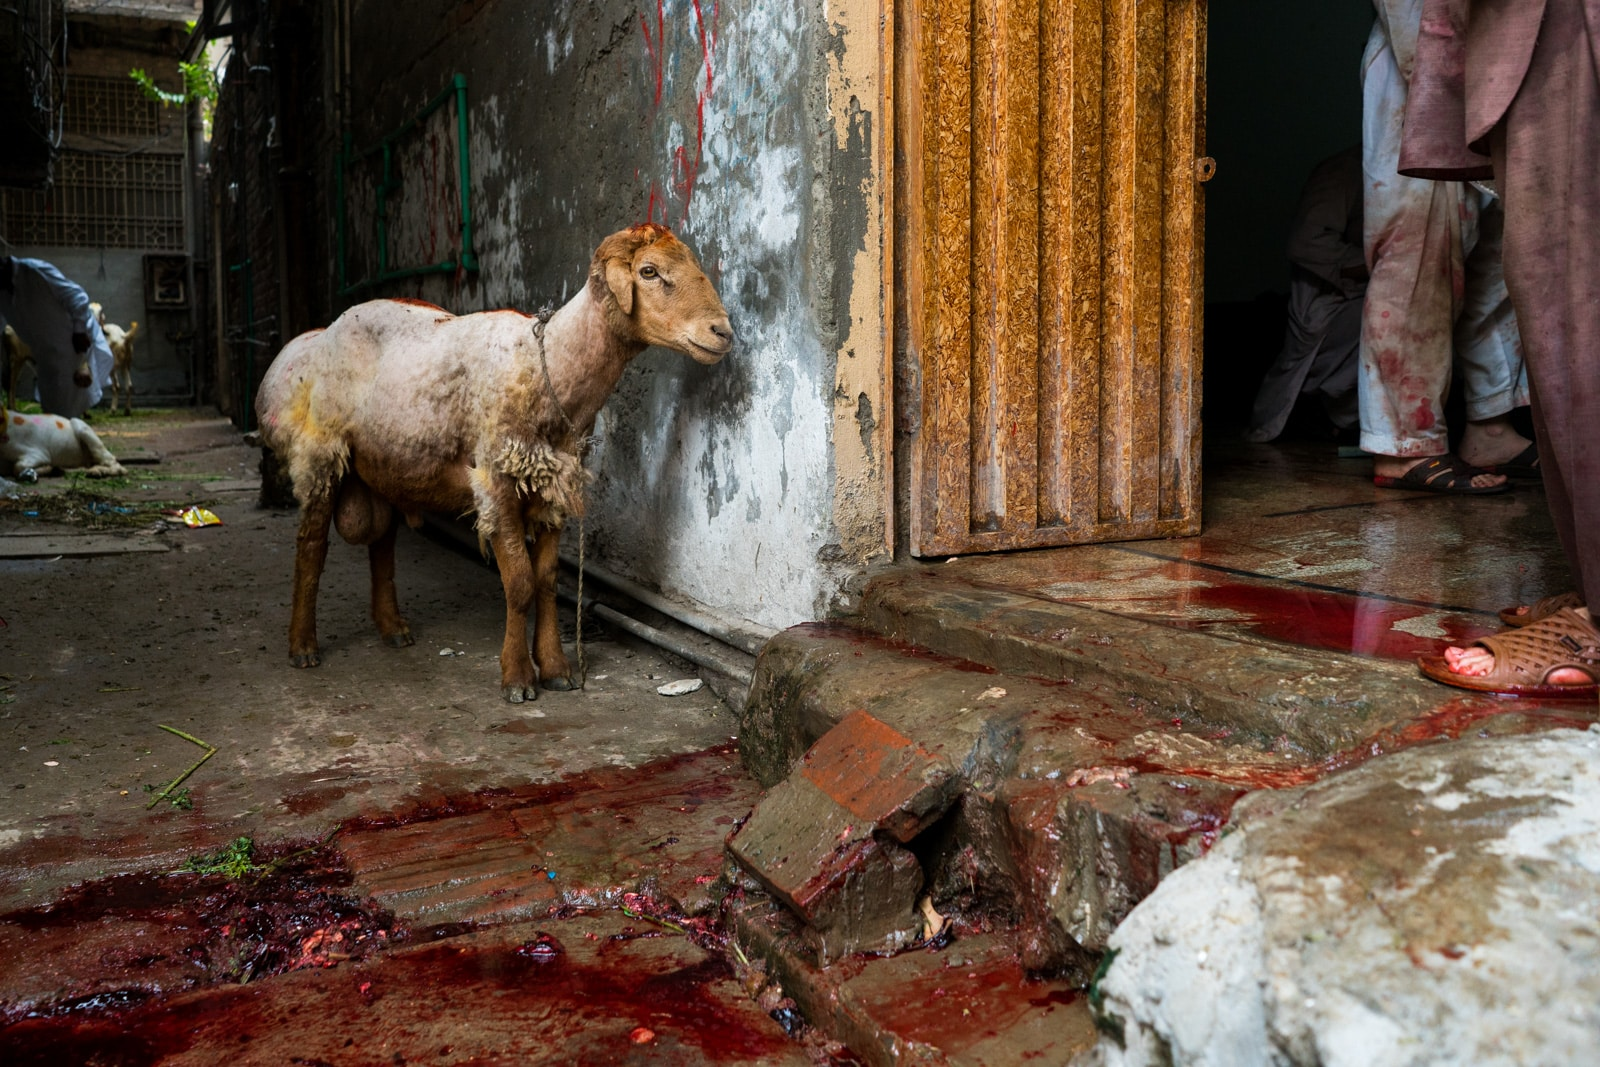 Celebrating Eid al-Adha in Lahore, Pakistan - A sheep standing before a blood puddle - Lost With Purpose